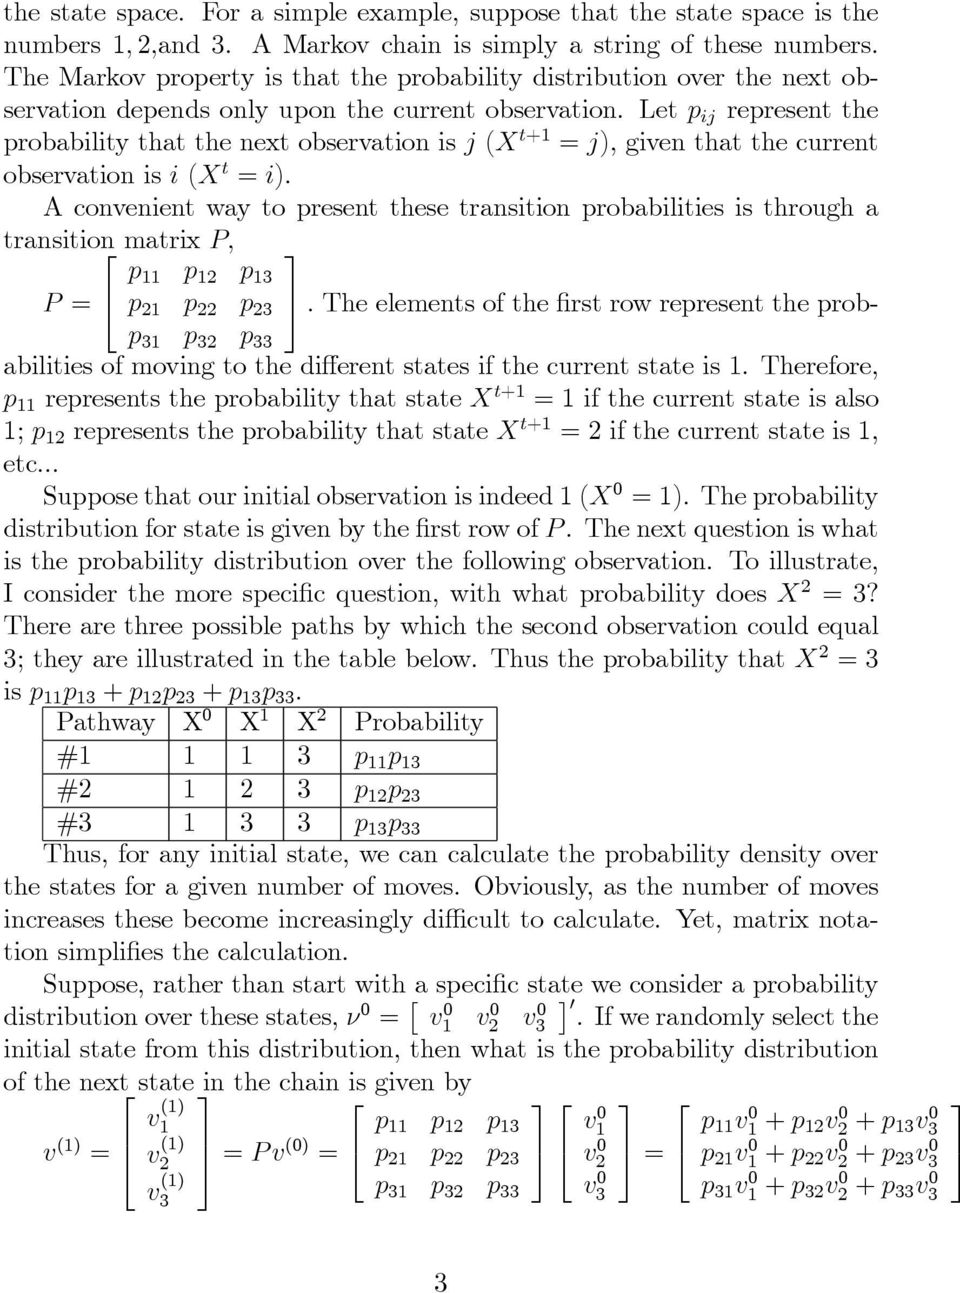 Let p ij represent the probability that the next observation is j (X t+1 = j), given that the current observation is i (X t = i).